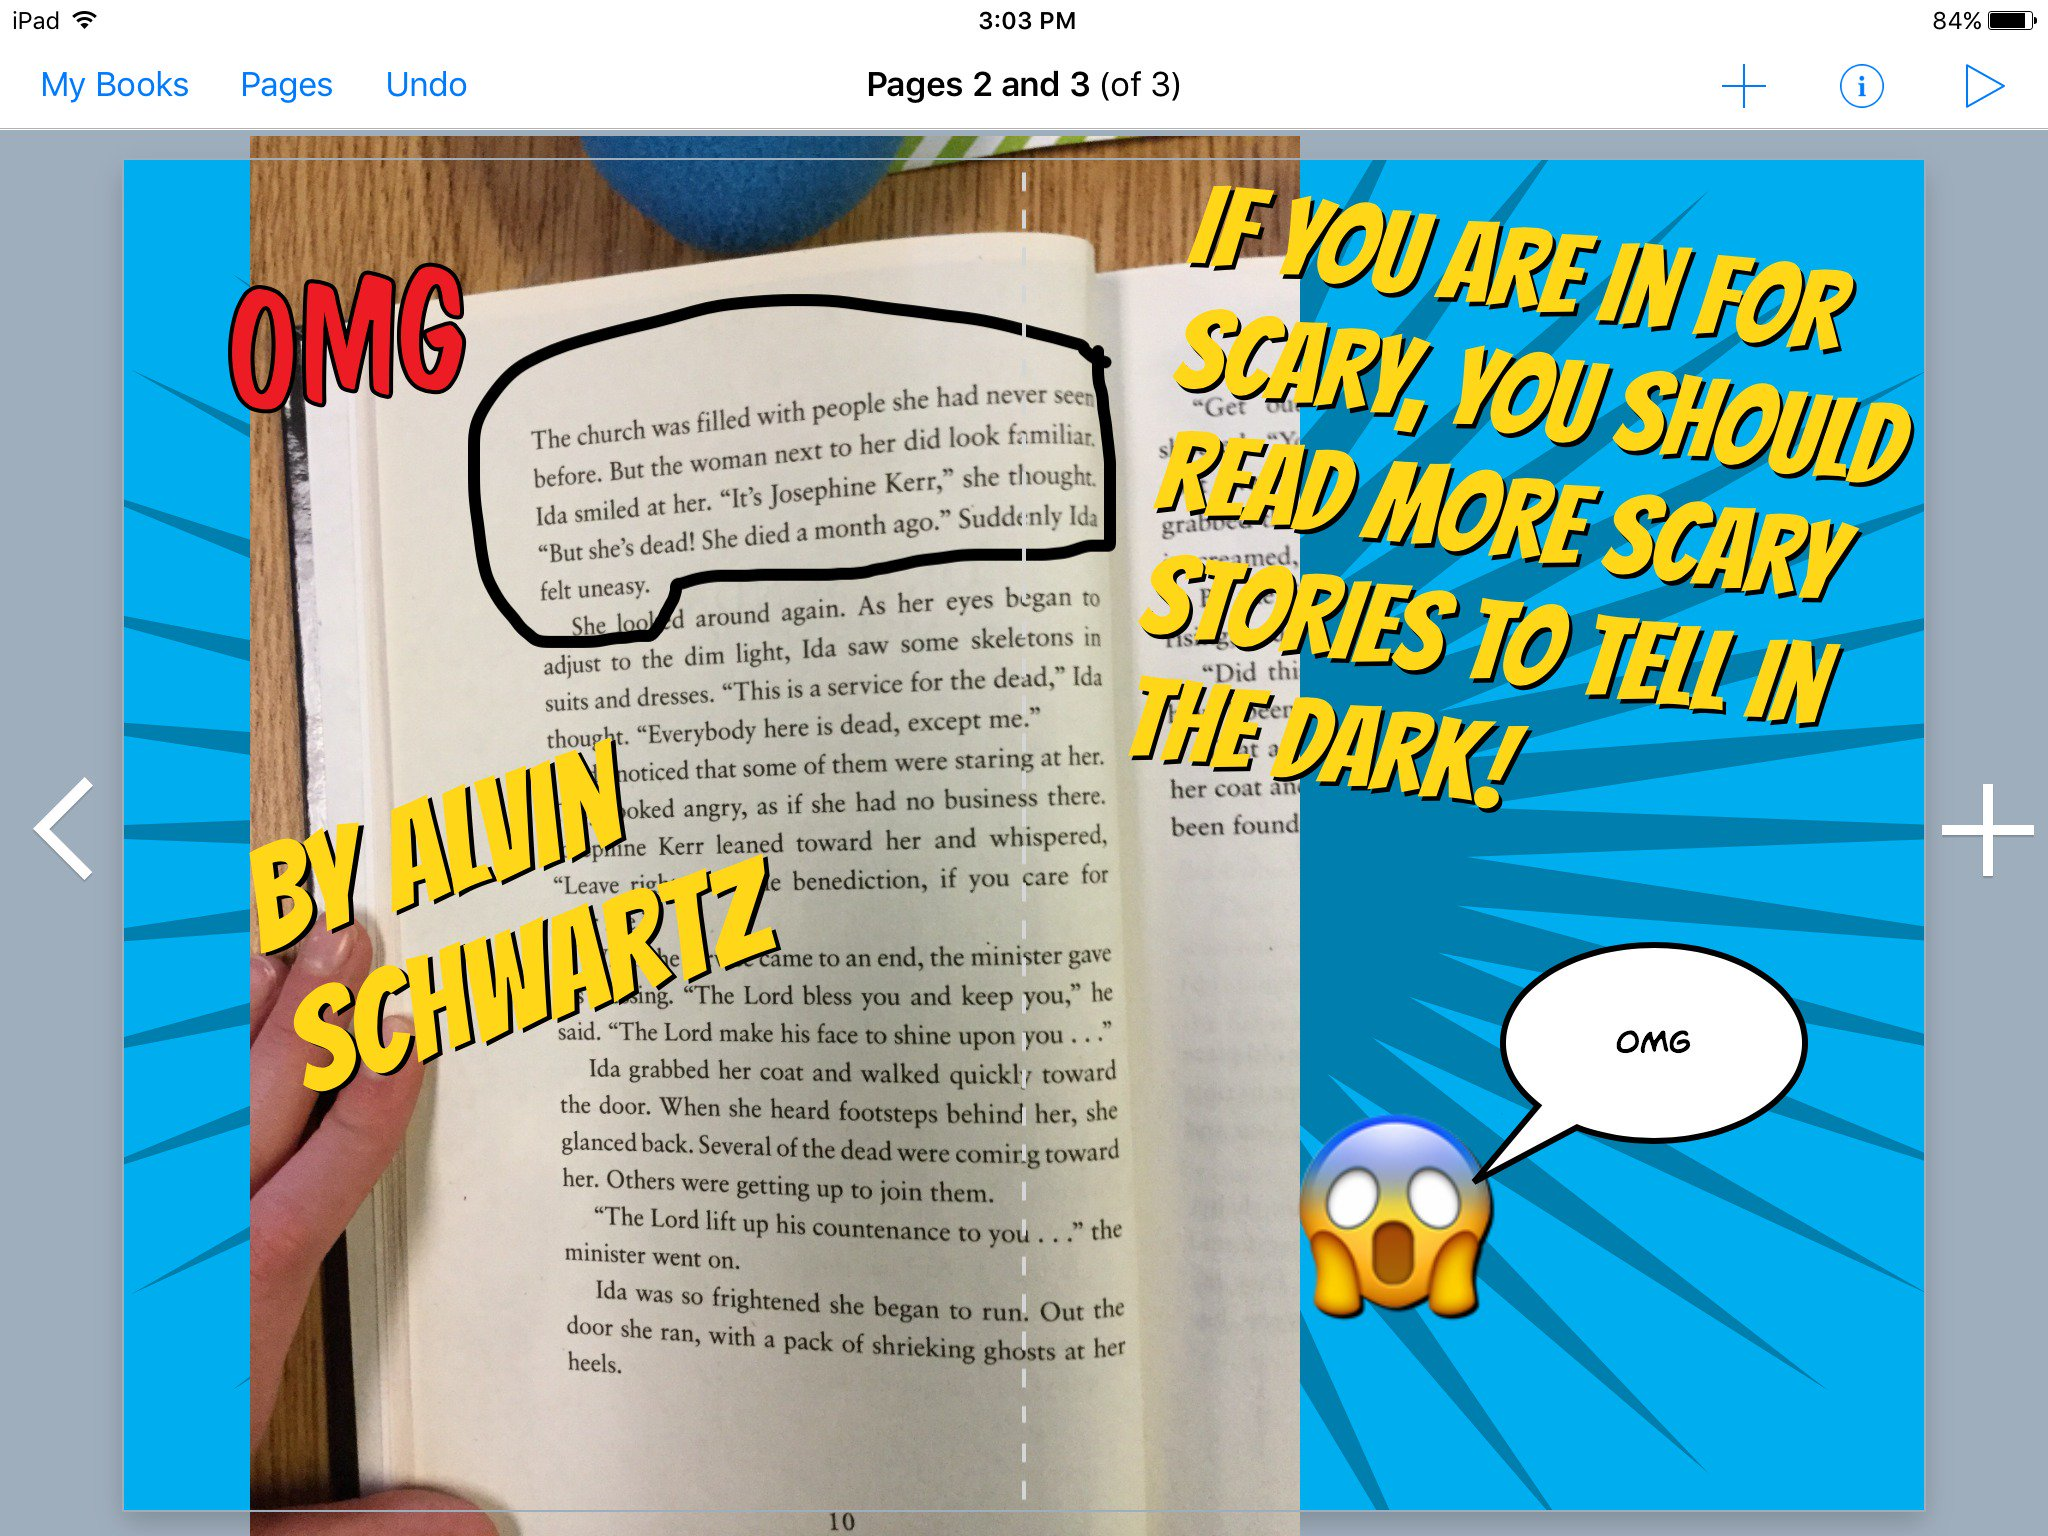 #booksnapswk2 #booksnaps HK_4VDH sharing More Scary Stories to Tell in the Dark @kerrvand #betl https://t.co/b5c1rkLt94